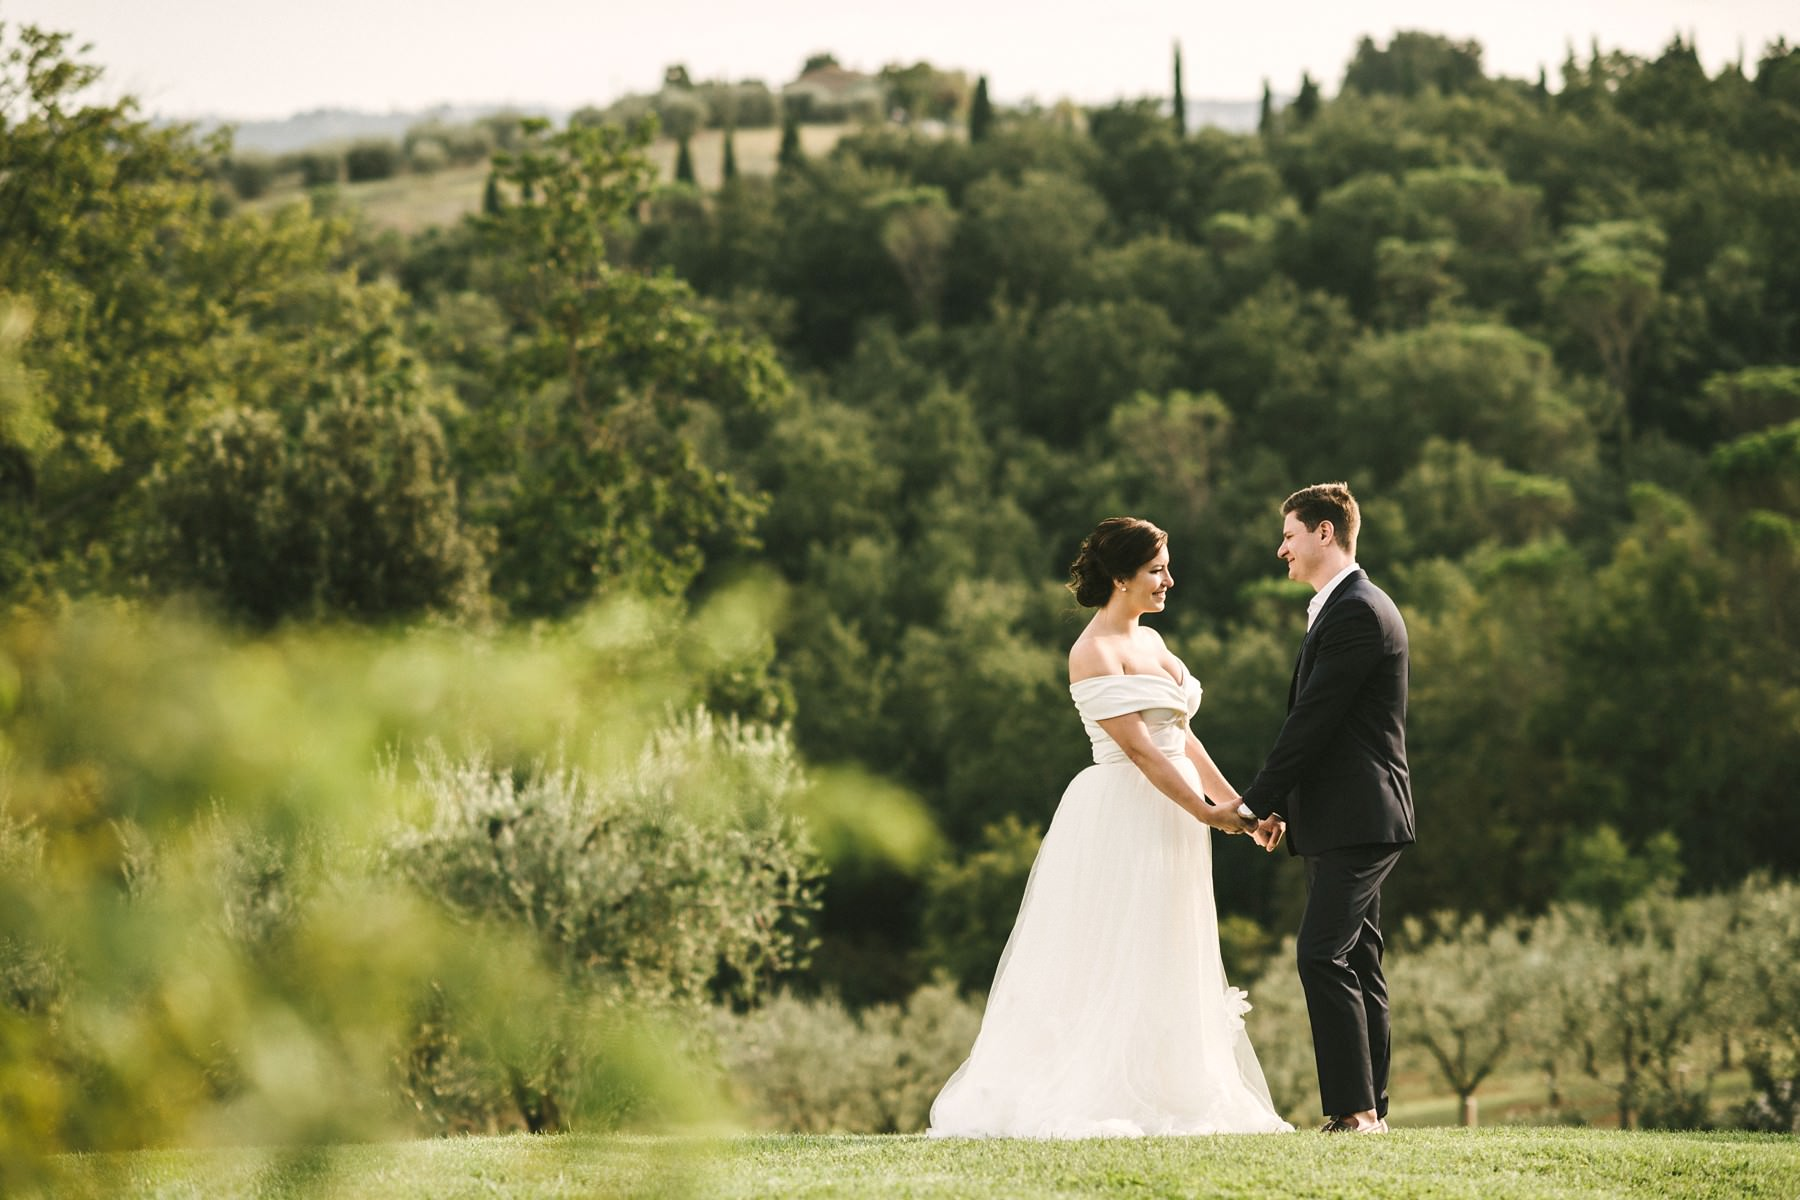 Lillianna and Ross's romantic elopement in Tuscany countryside farmhouse Casetta